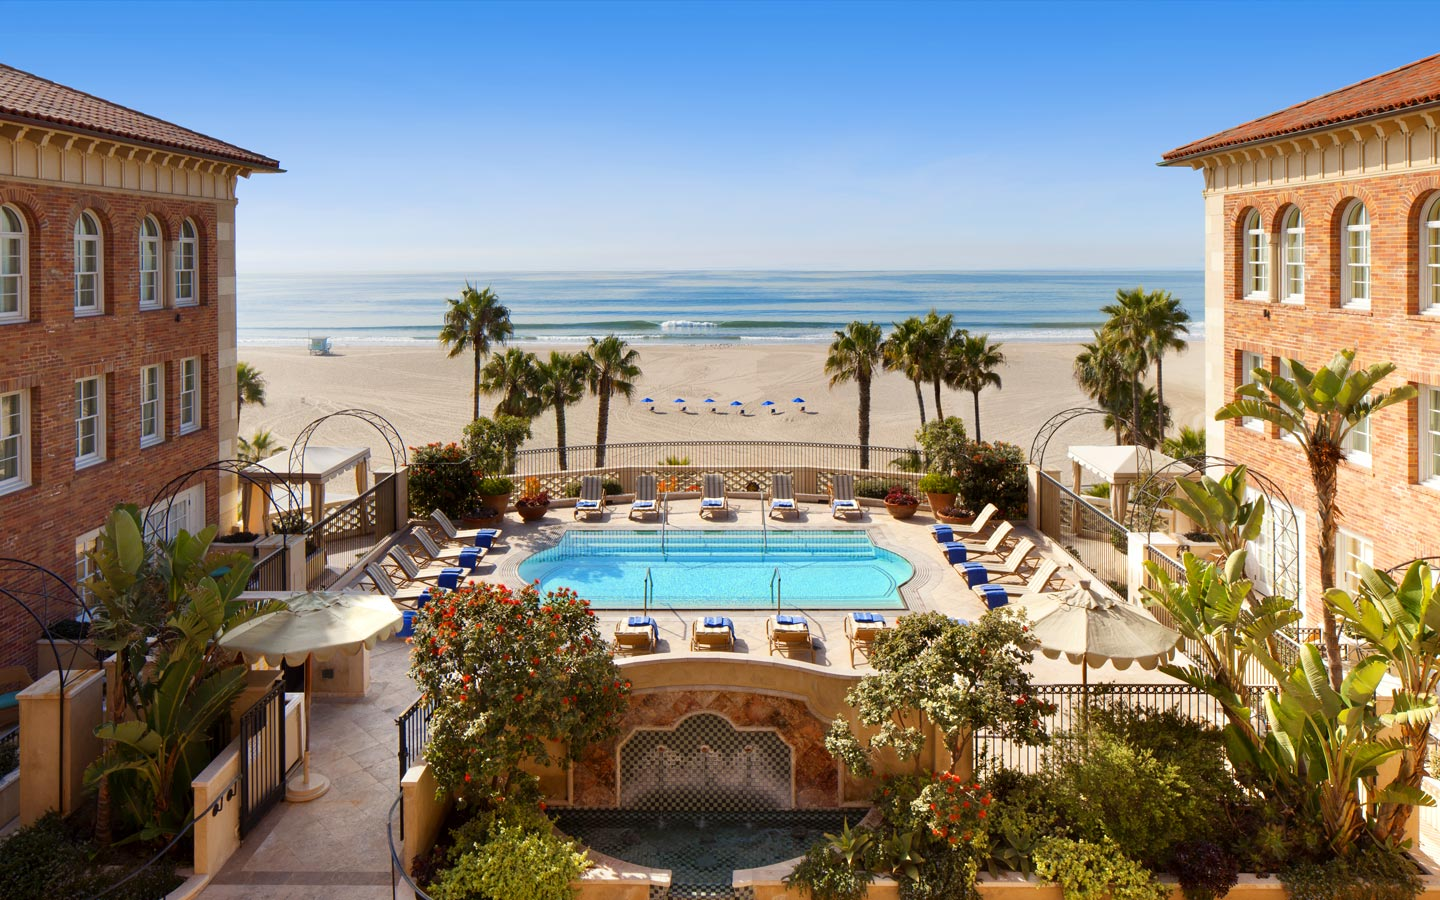 Hotel Casa Del Mar Review | Hey Gents